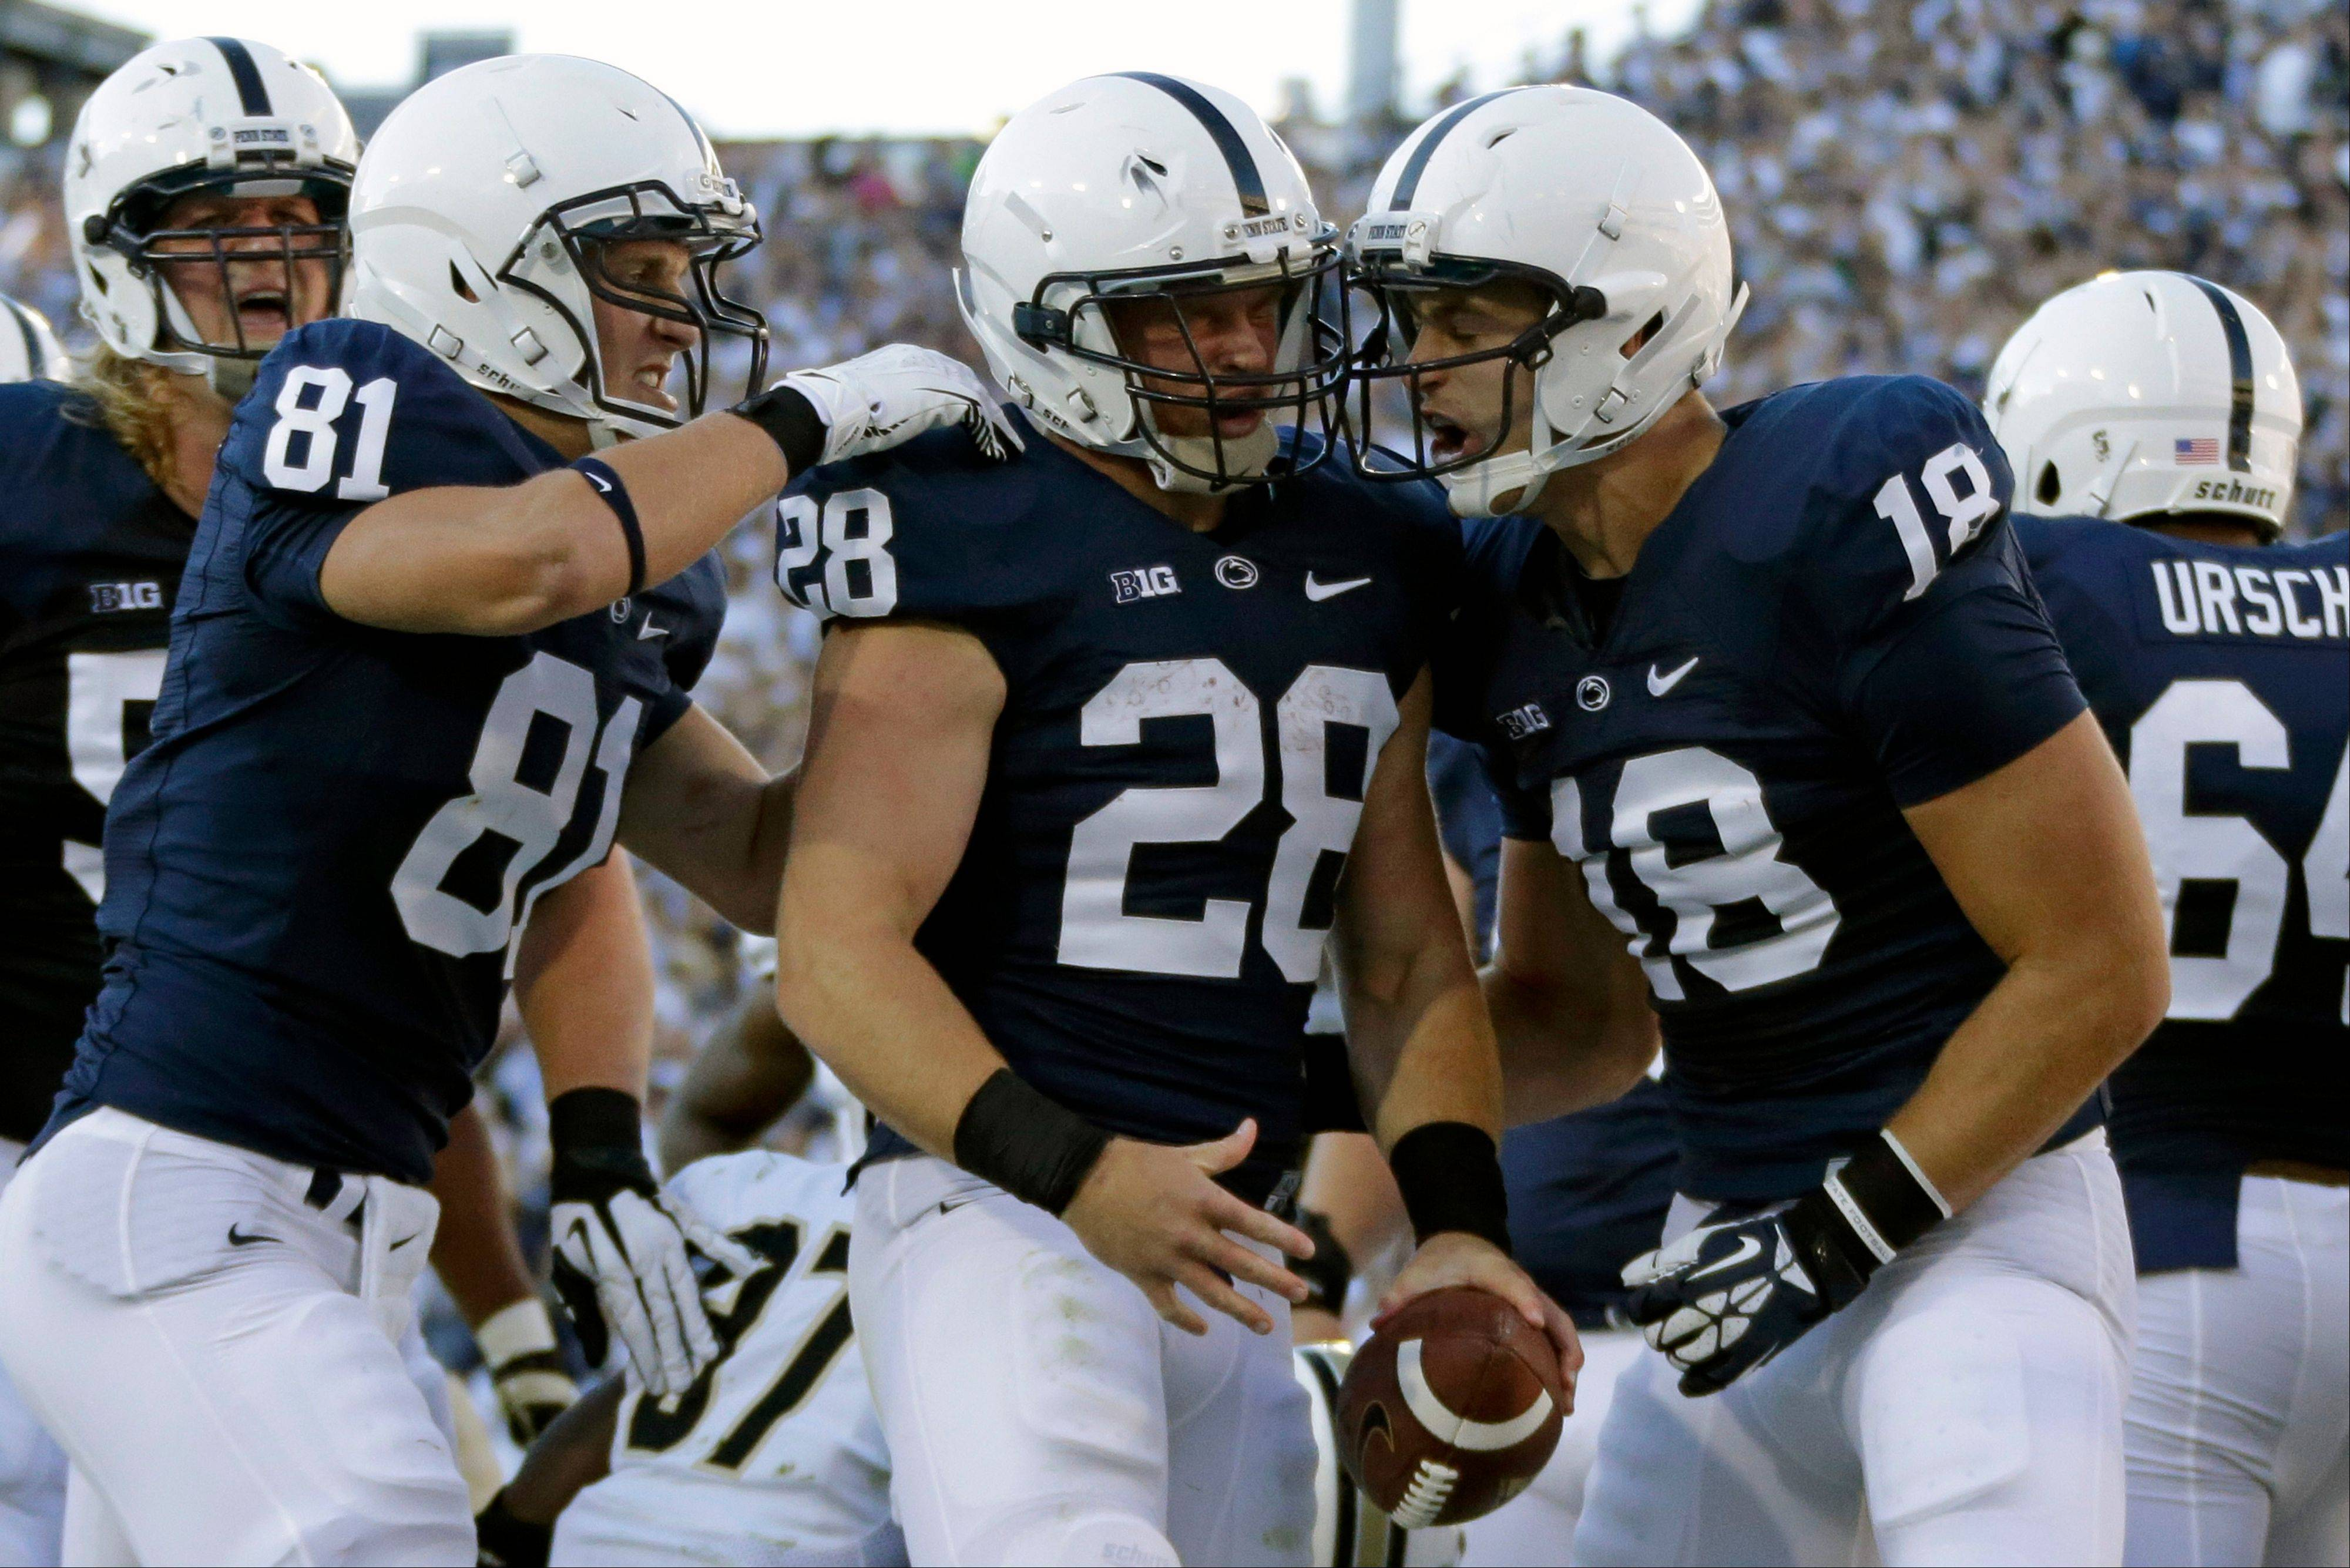 Penn State running back Zach Zwinak (28) celebrates with teammates Adam Breneman (81) and Jesse James (18) after rushing for a touchdown during the first quarter of last weekend's game against Central Florida in State College, Pa.